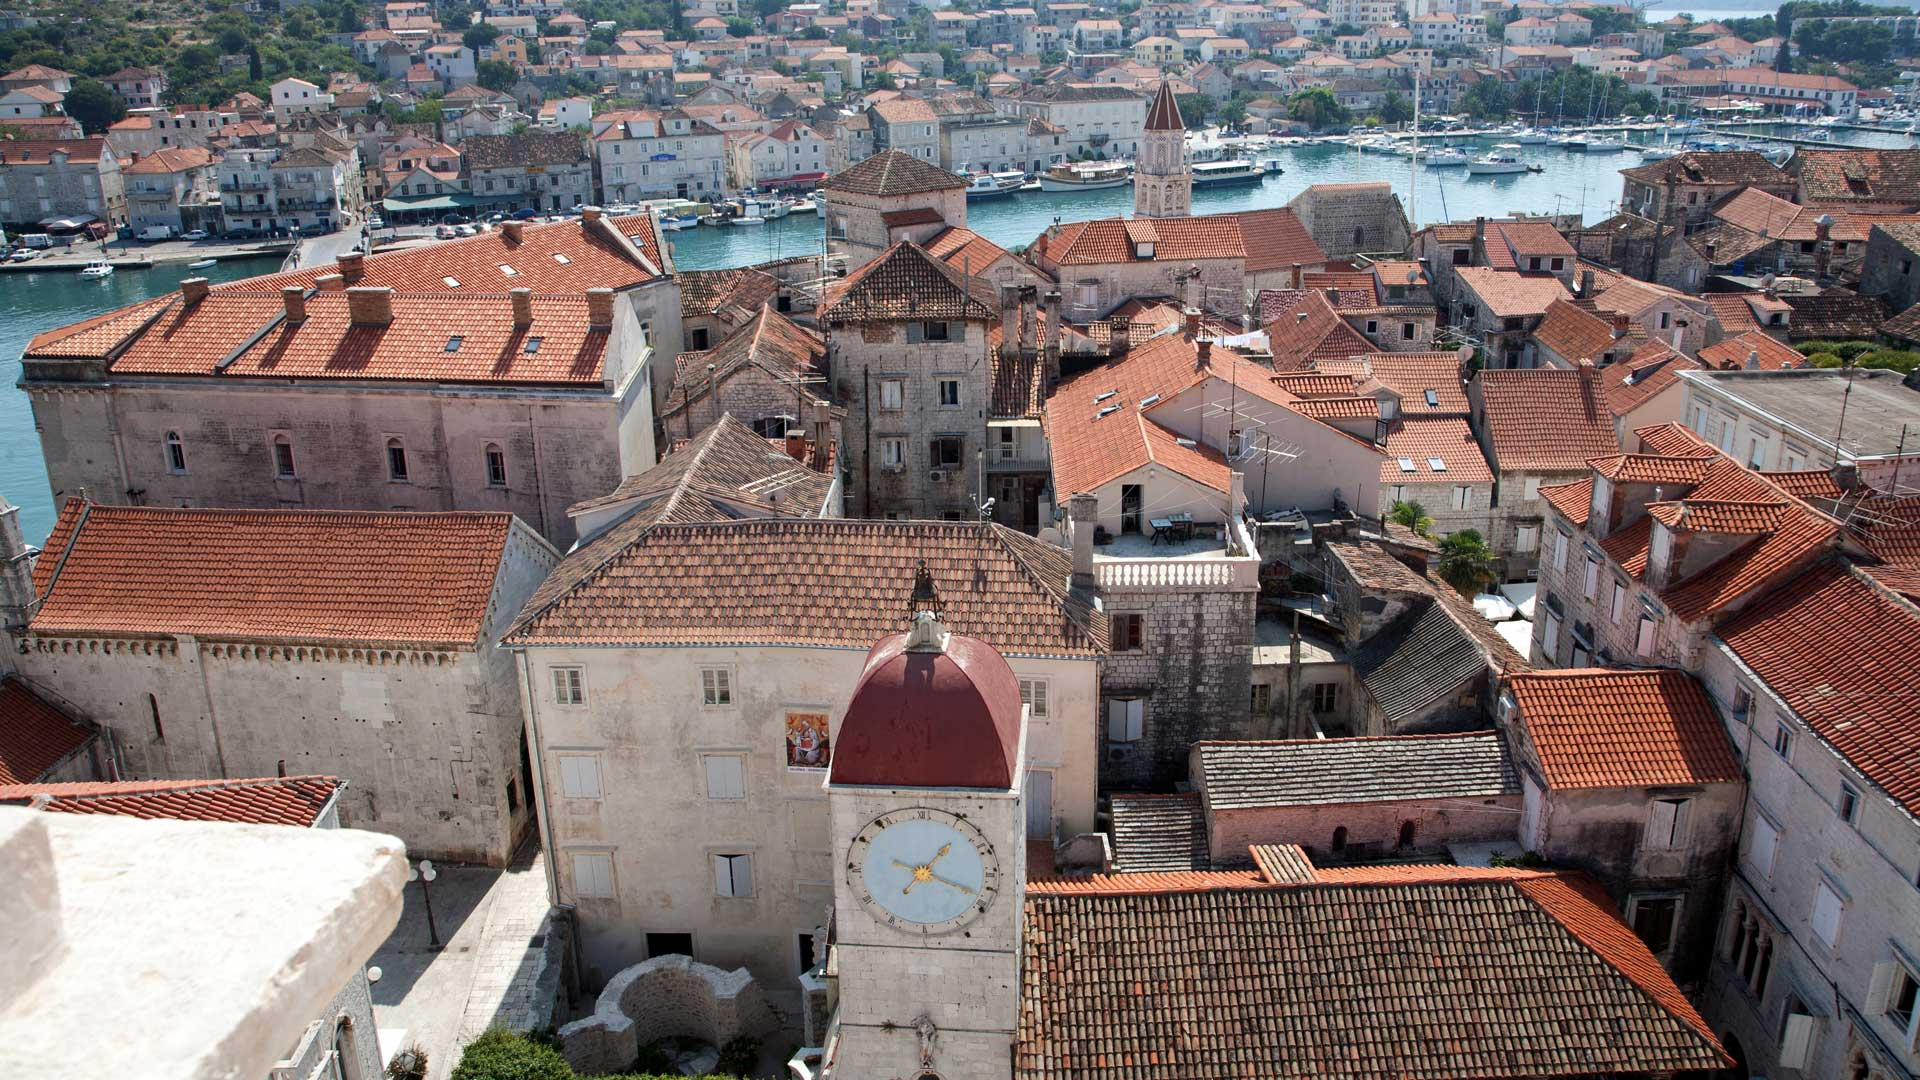 Loggia with clock tower, Trogir, Split-Dalmatia, Croatia